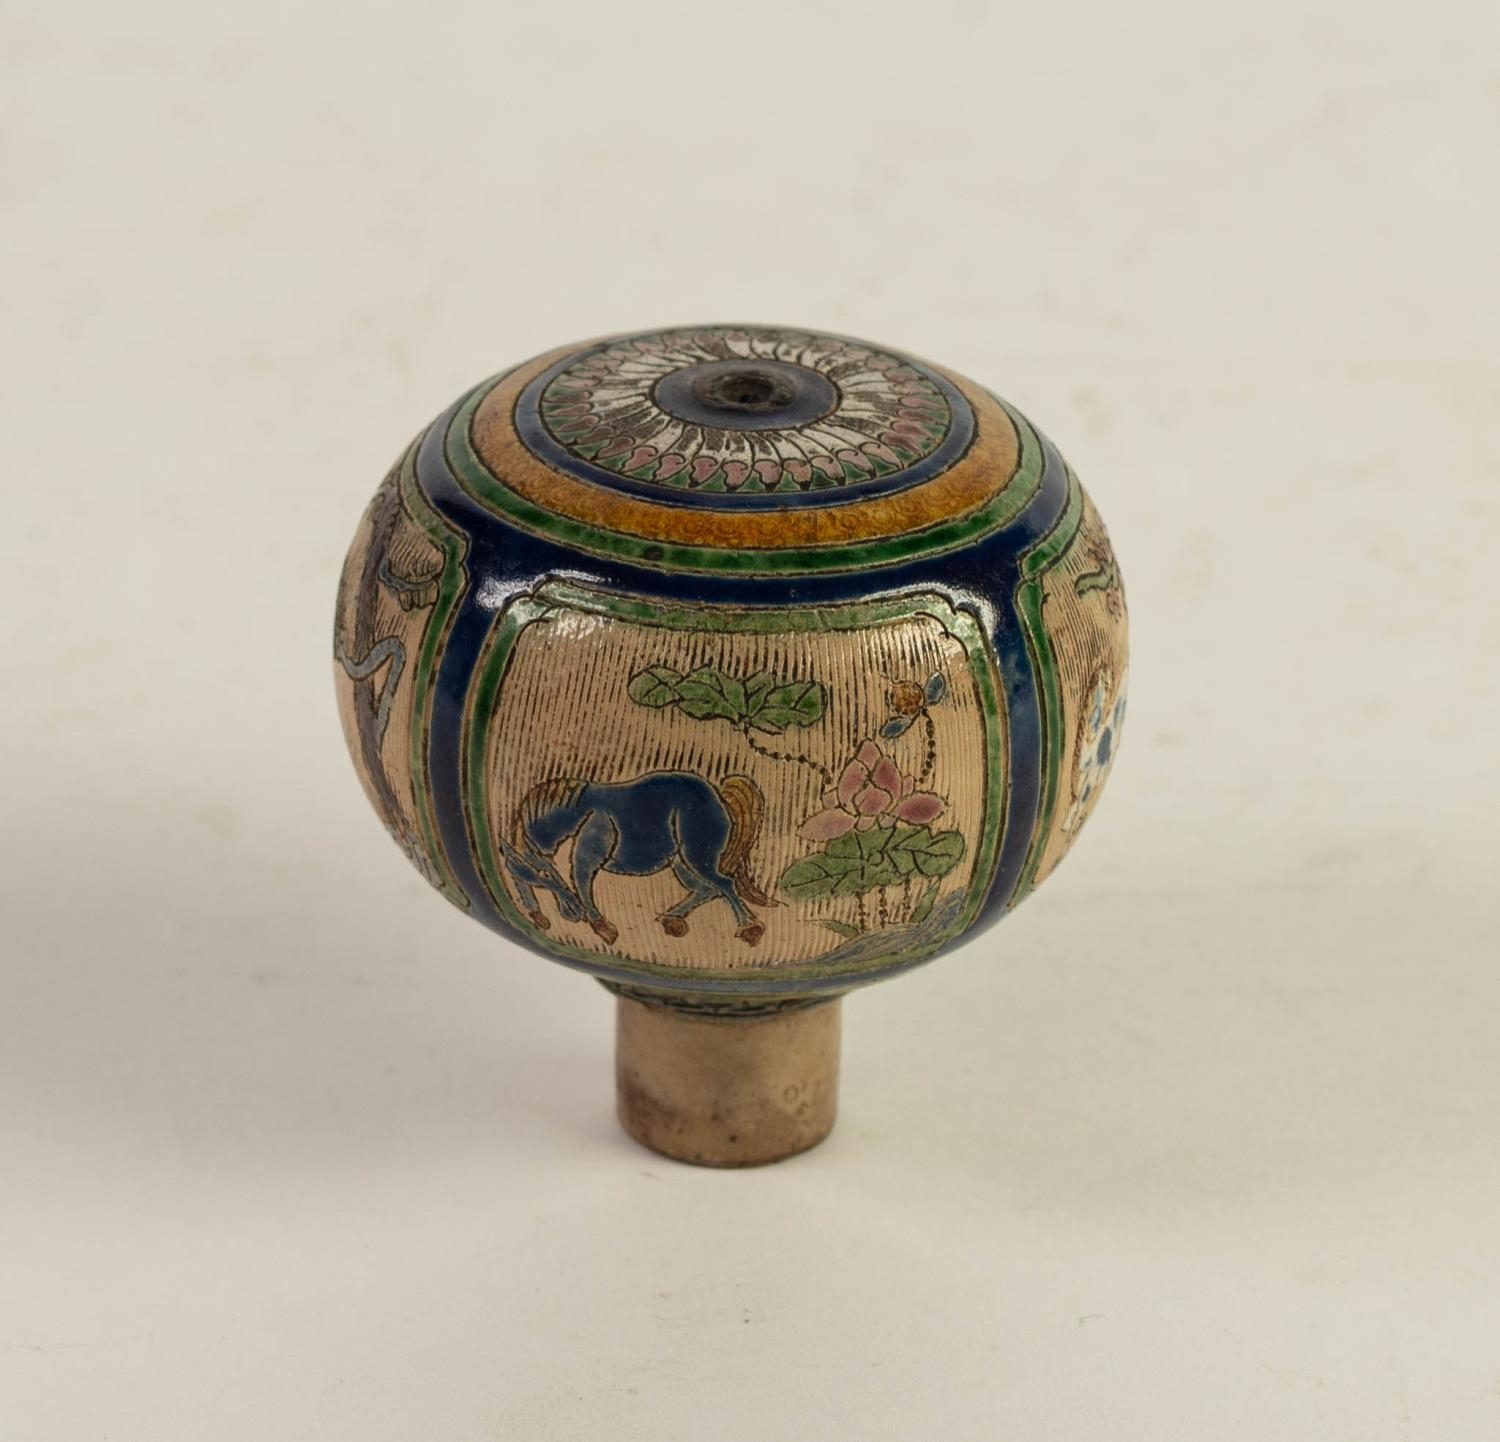 CHINESE QING DYNASTY PORCELANEOUS ORBICULAR KNOB OR FINIAL, incised and enamelled with four panels